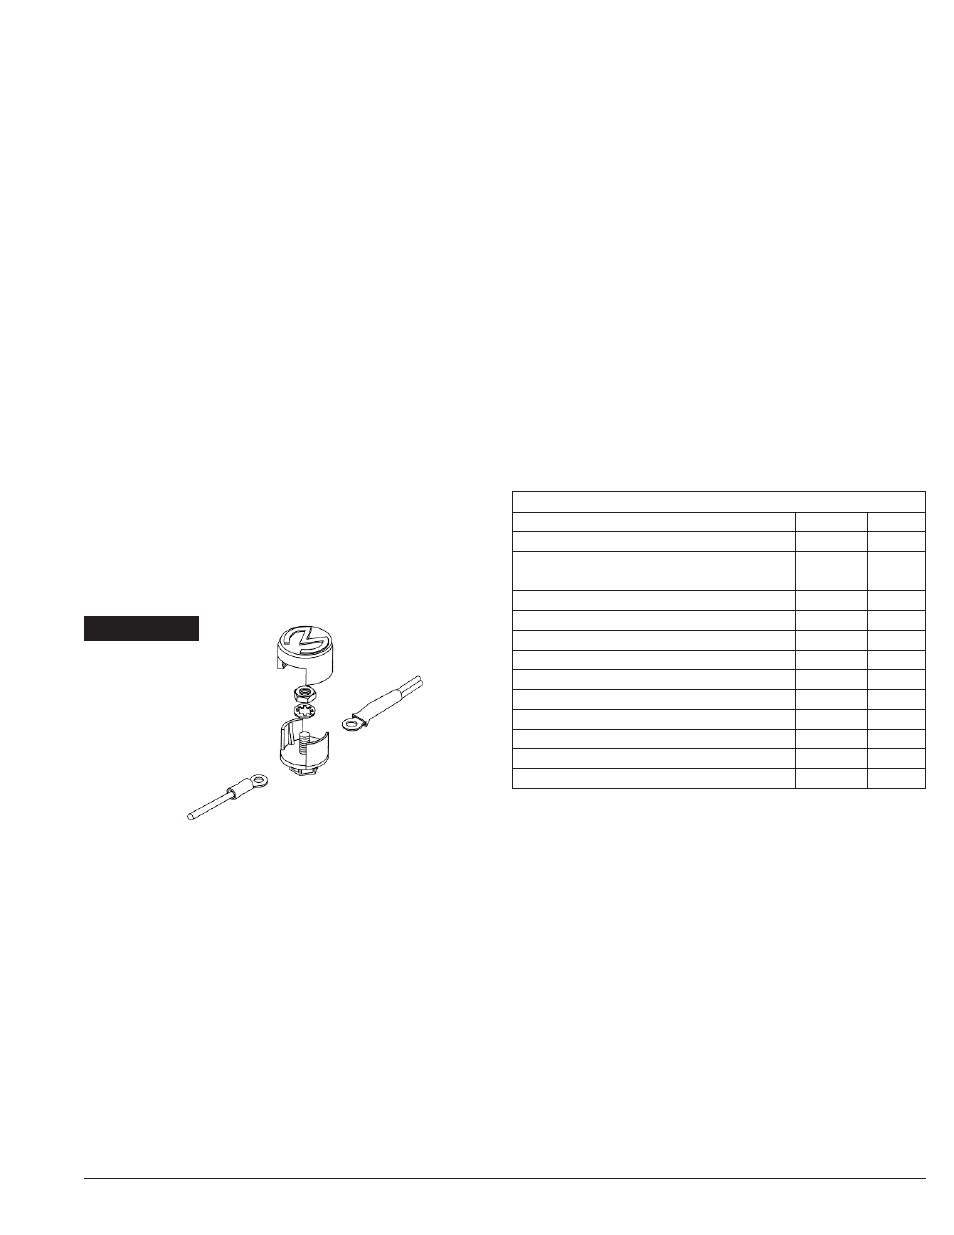 Mallory Ignition Hyfire Vi Series Of Electronic Duraspark Red Wire Controls 685 6851 User Manual Page 7 12